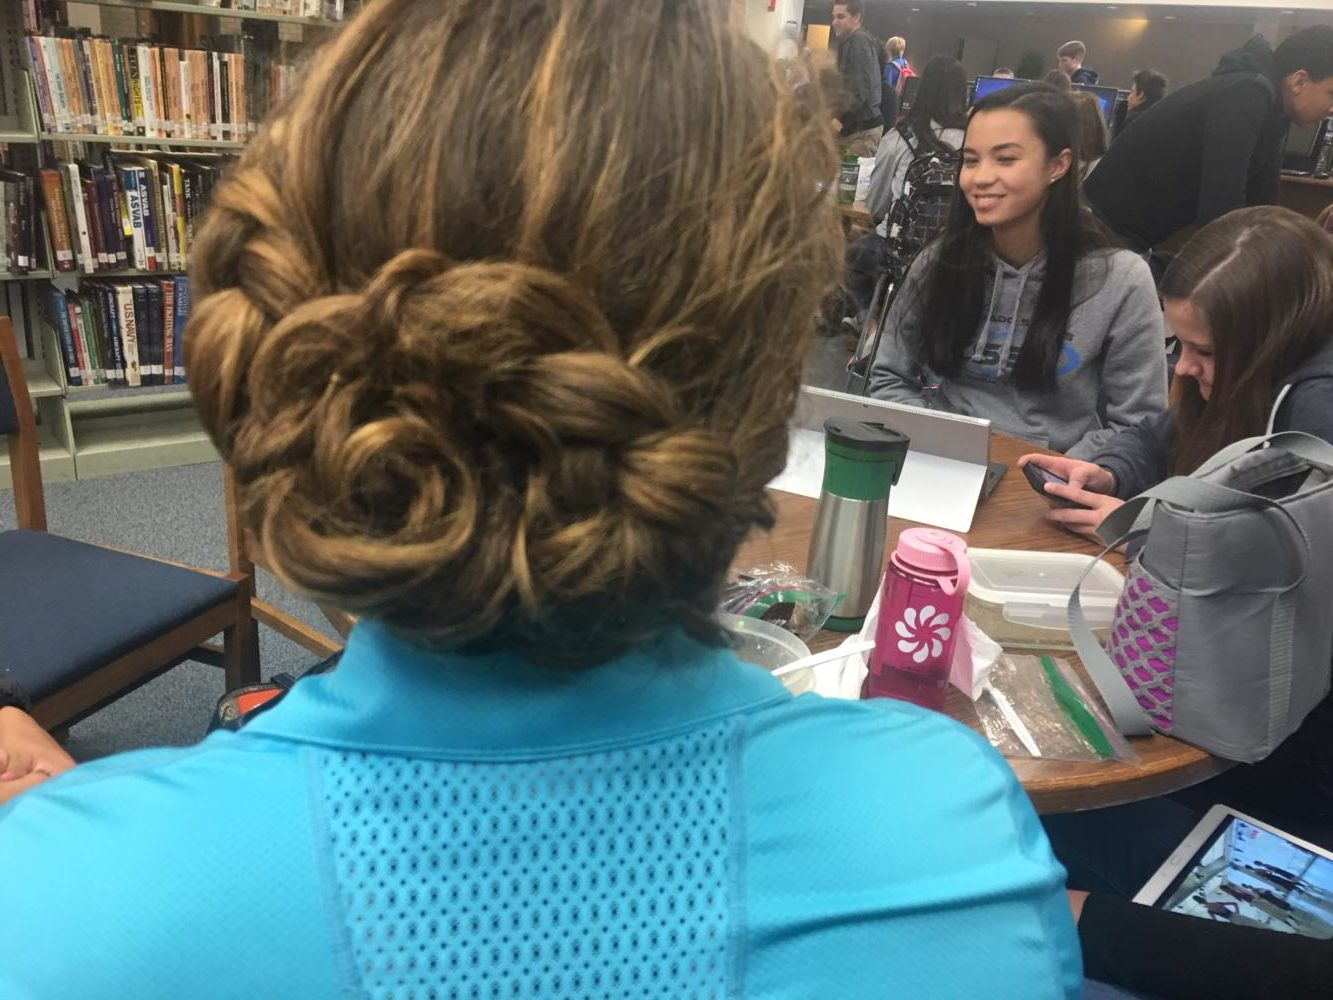 Kayla and Ryn braided my hair during lunch.